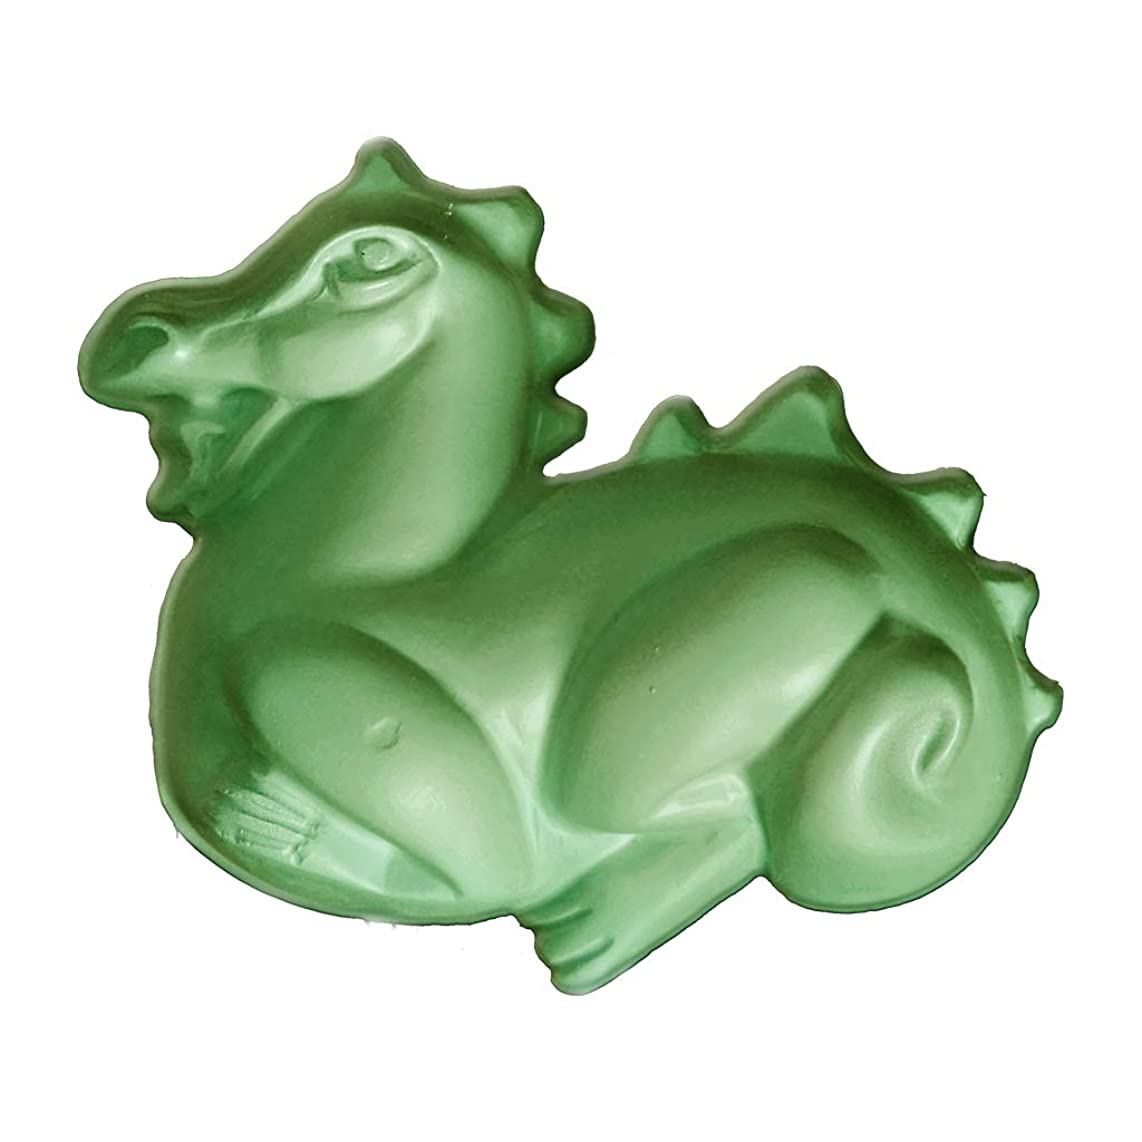 Milky Way Dragon Soap Mold Tray - Melt and Pour - Cold Process - Clear PVC - Not Silicone - MW 340